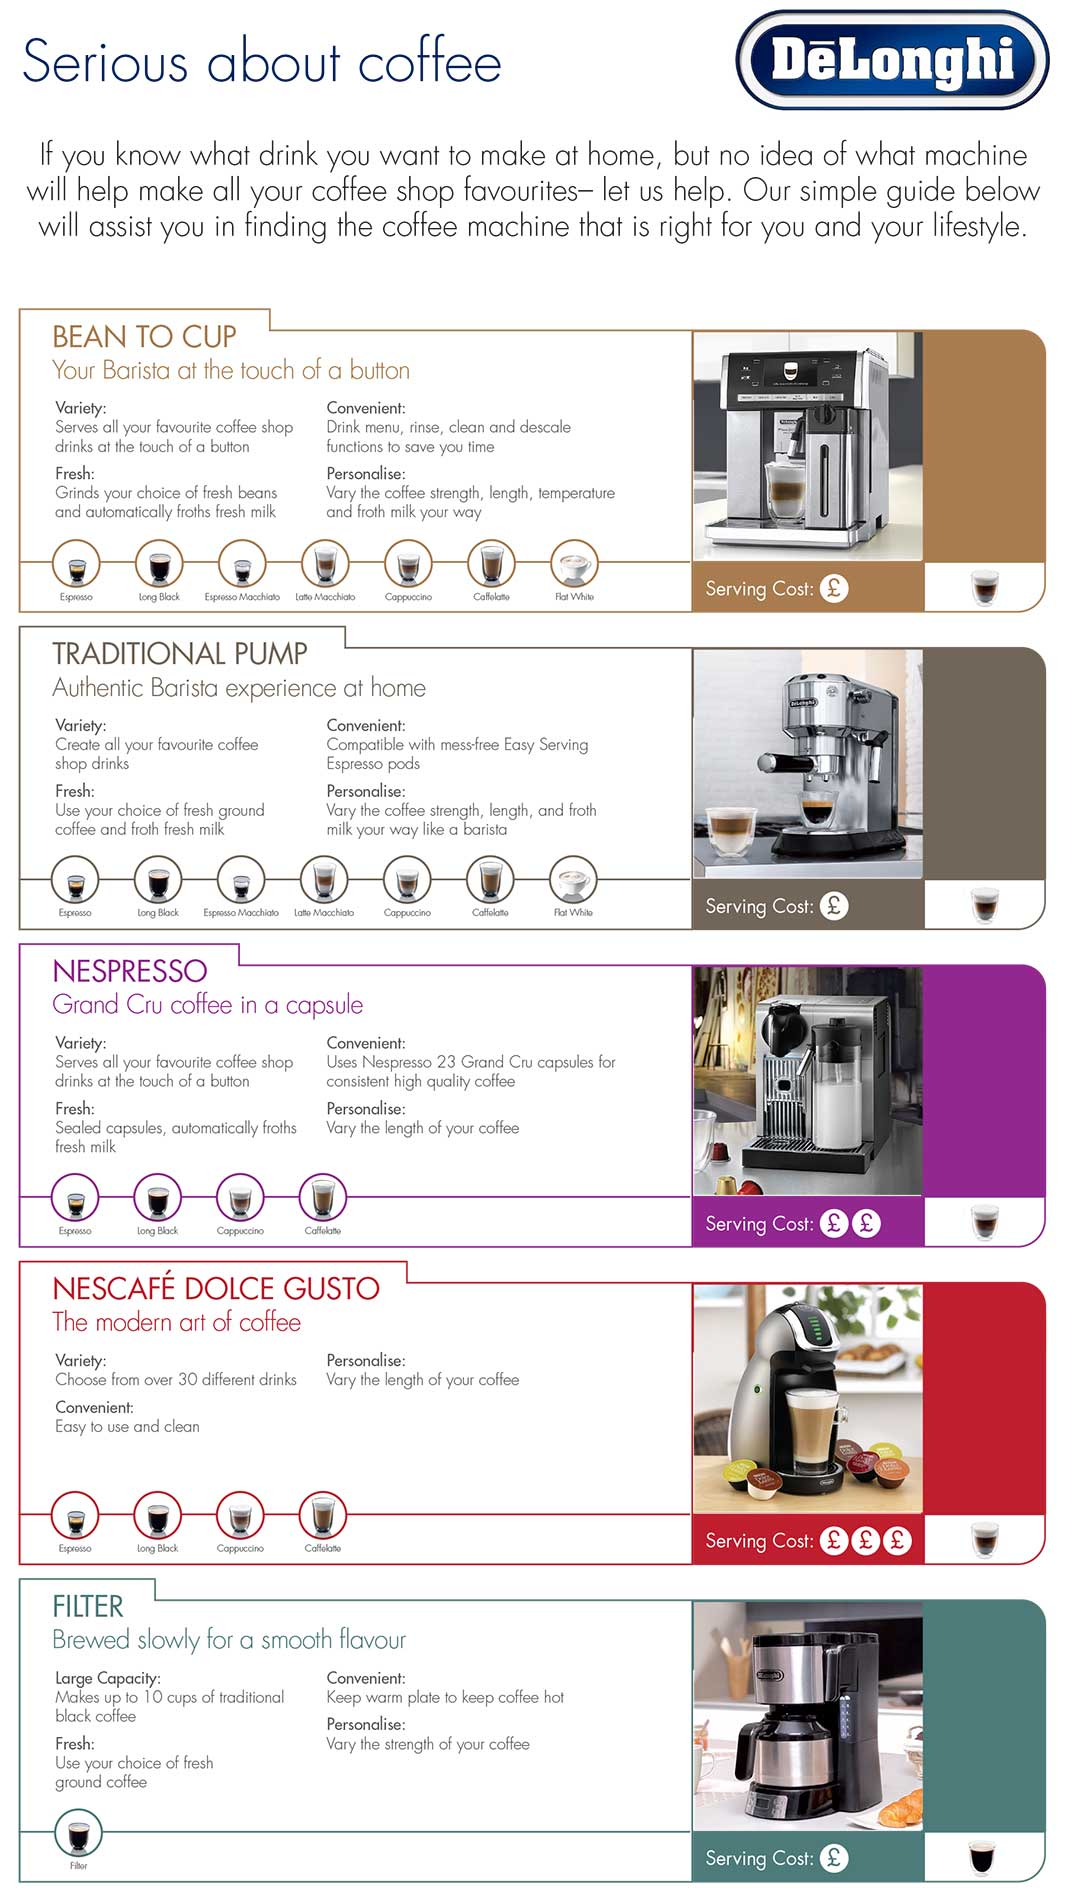 Delonghi Coffee Story